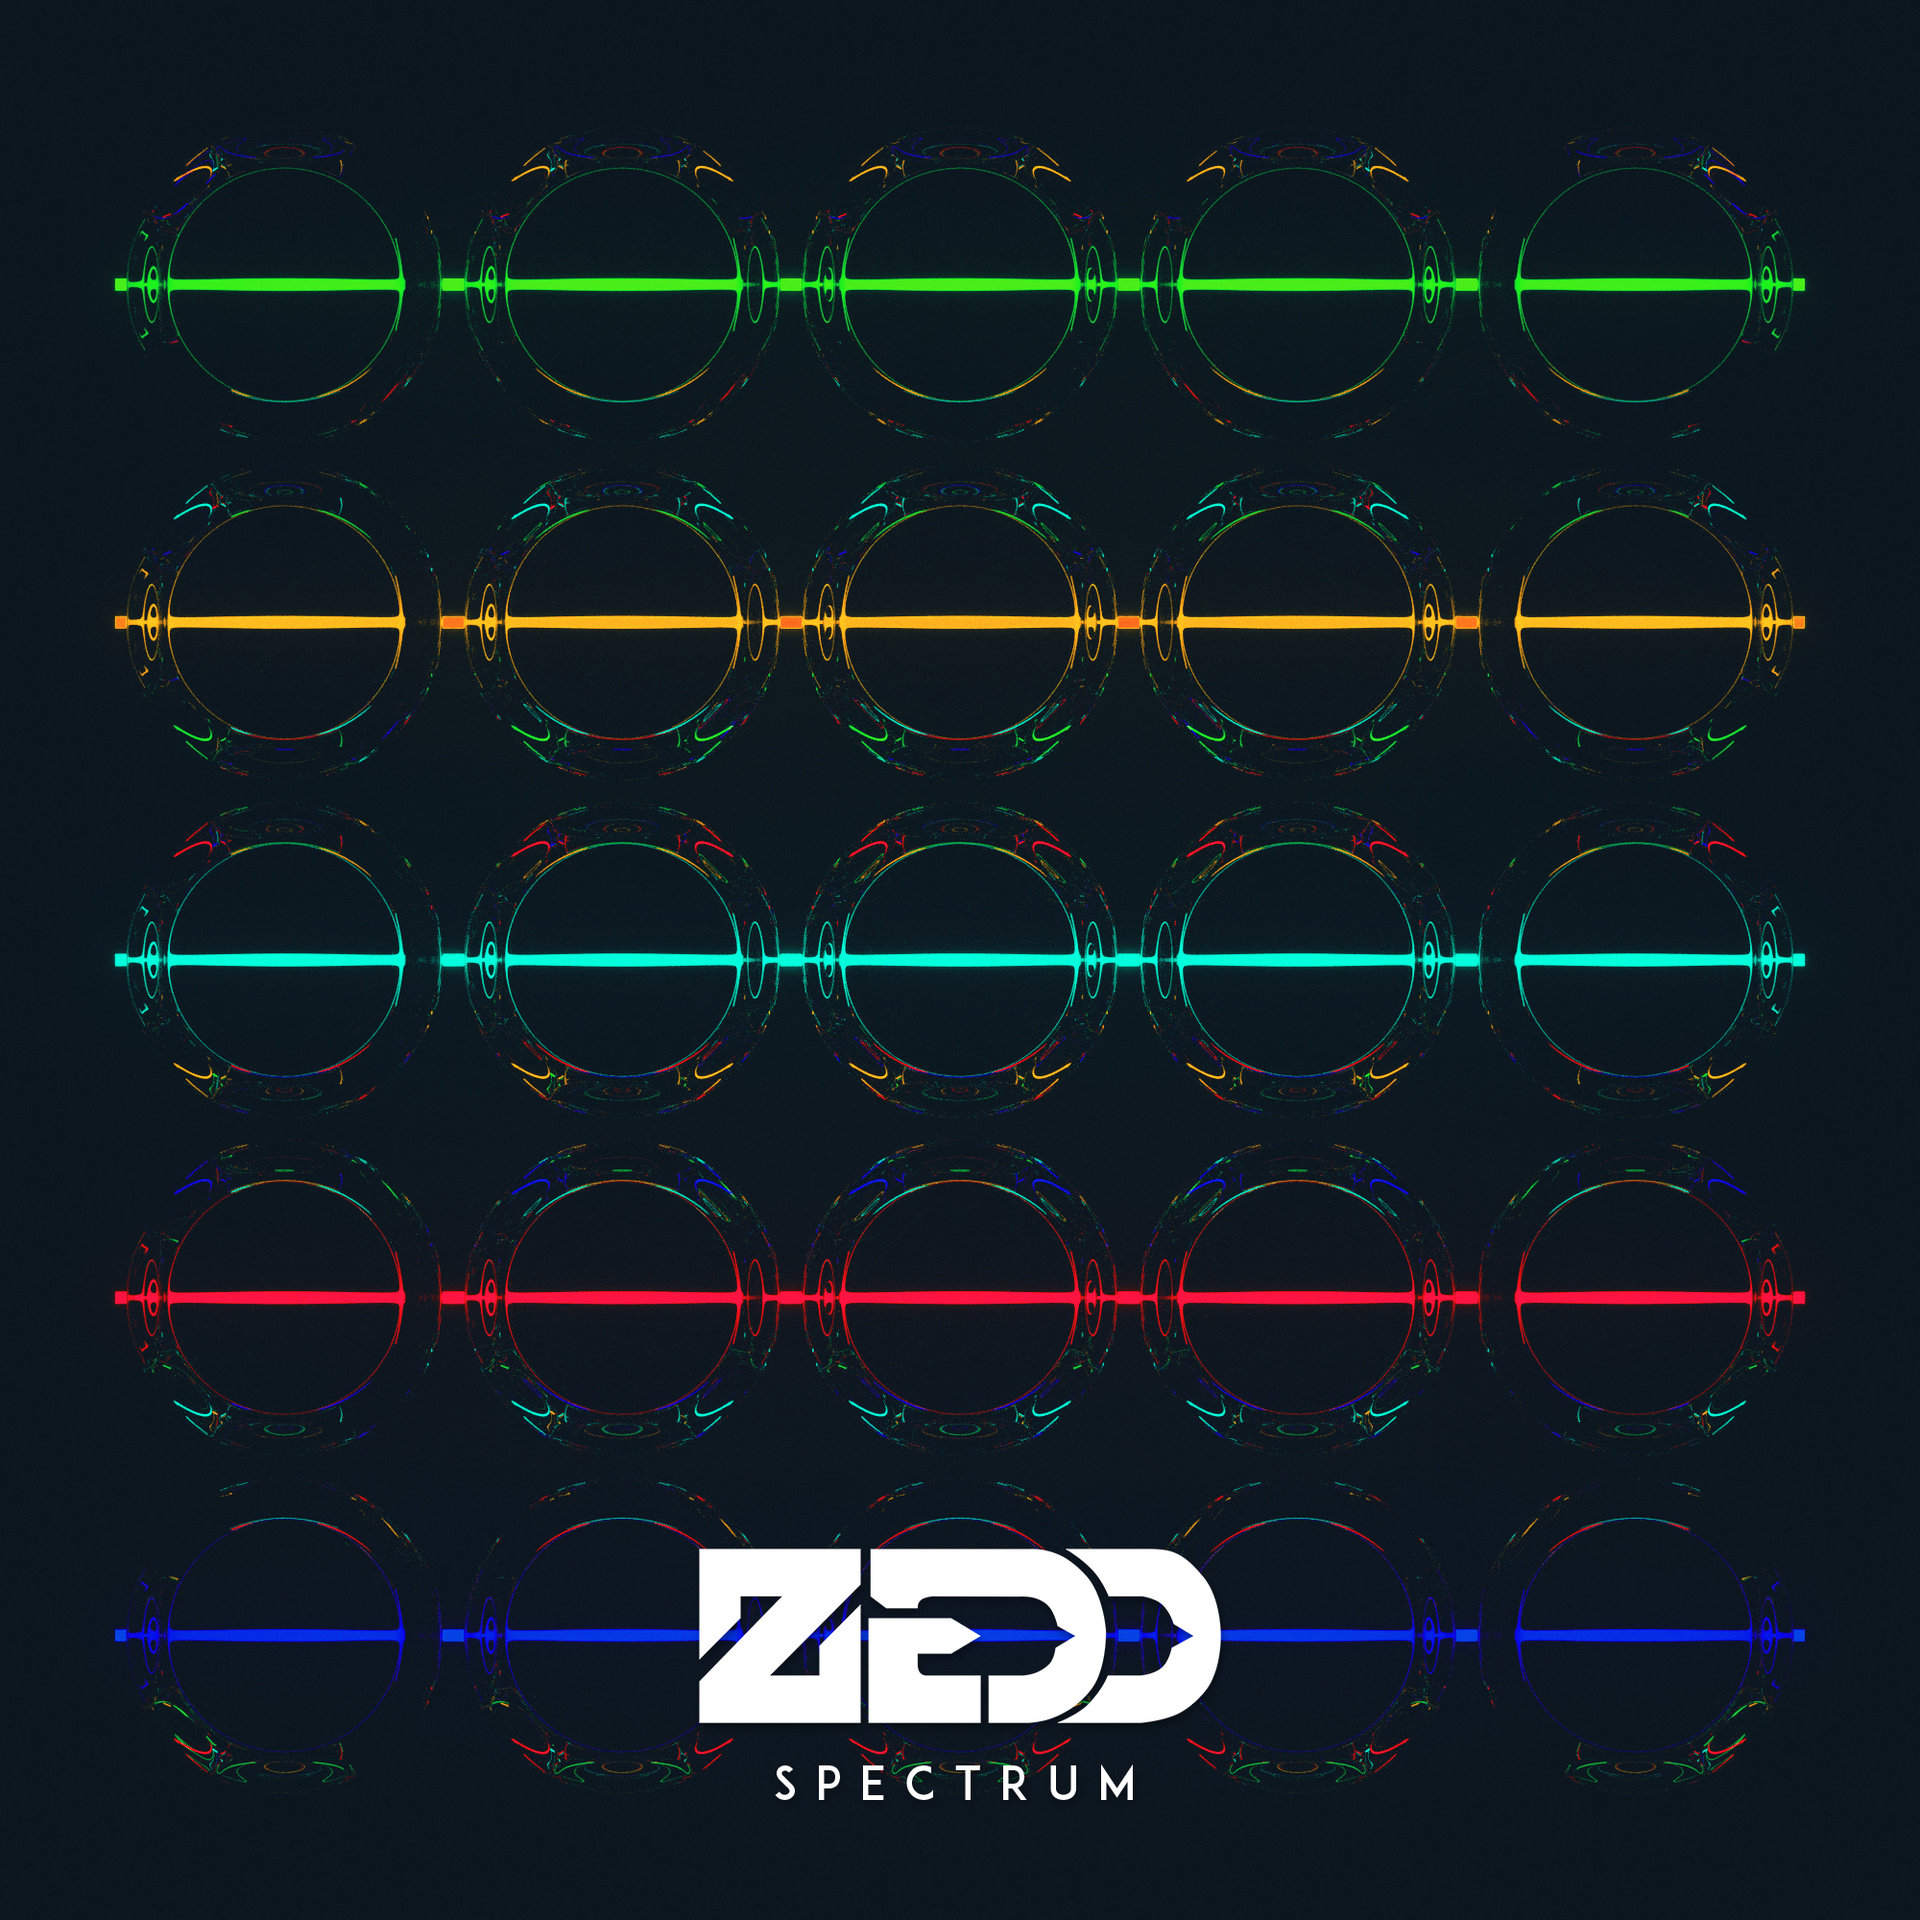 Mark chang zedd cover2